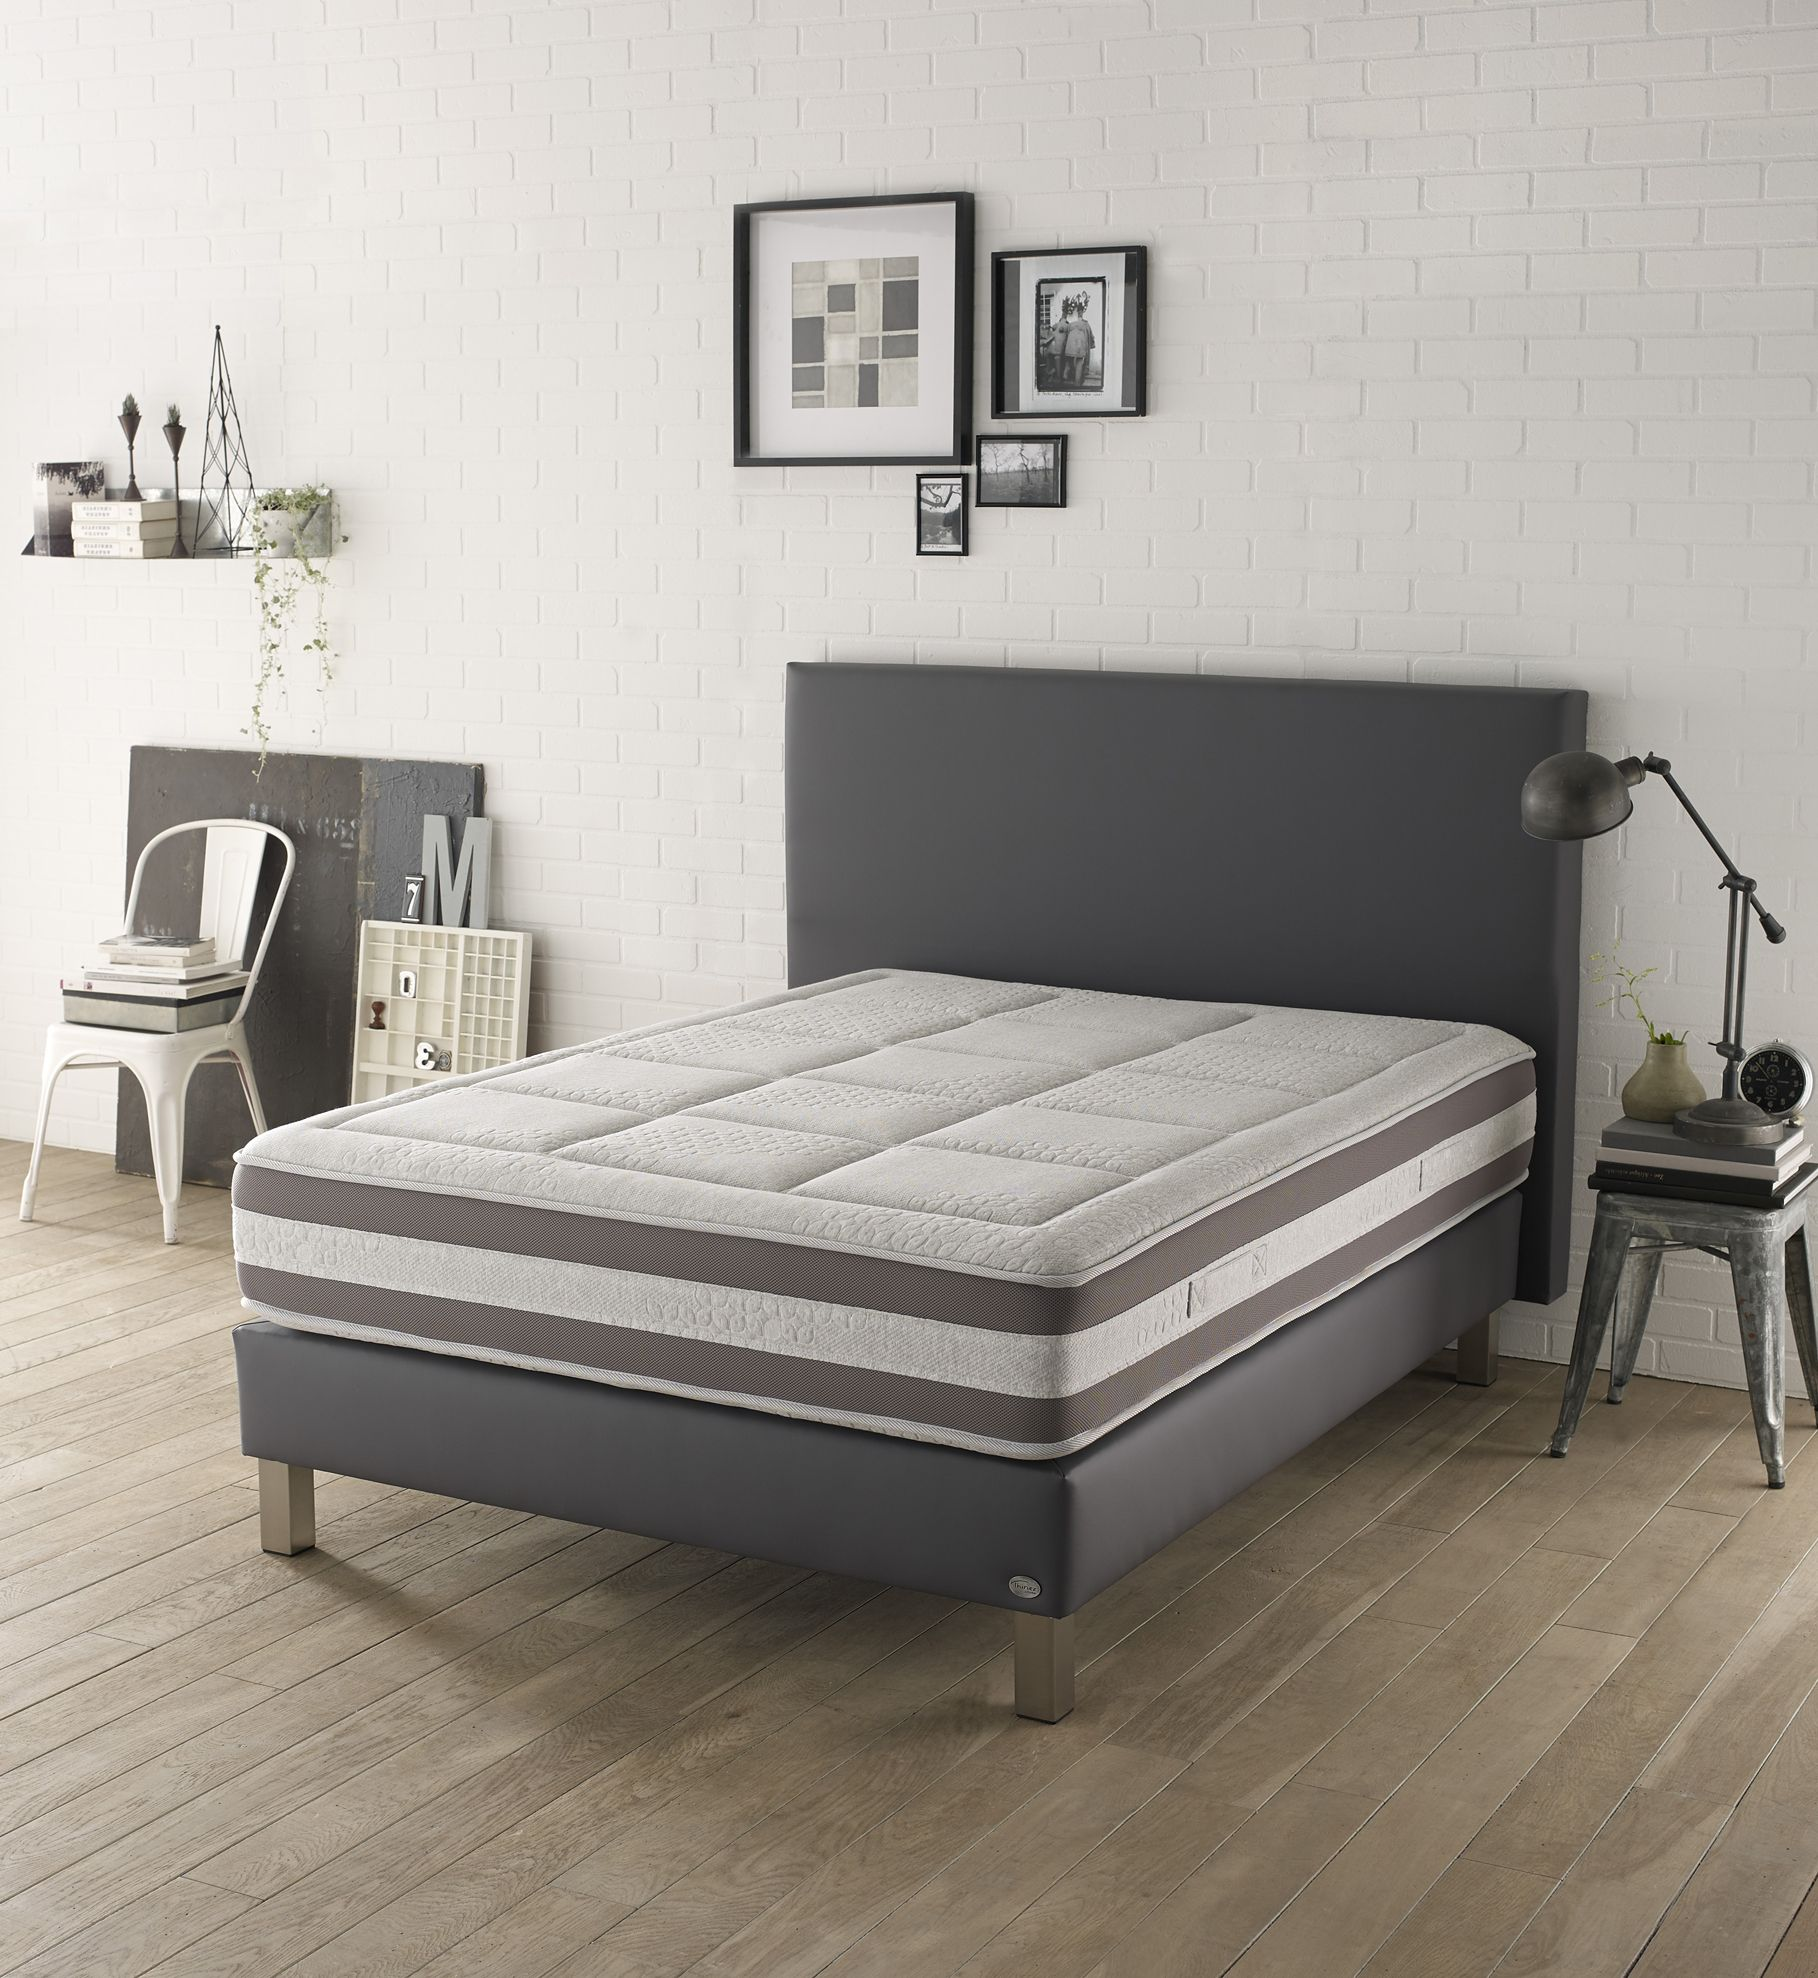 les 25 meilleures id es de la cat gorie matelas latex naturel sur pinterest matelas latex. Black Bedroom Furniture Sets. Home Design Ideas